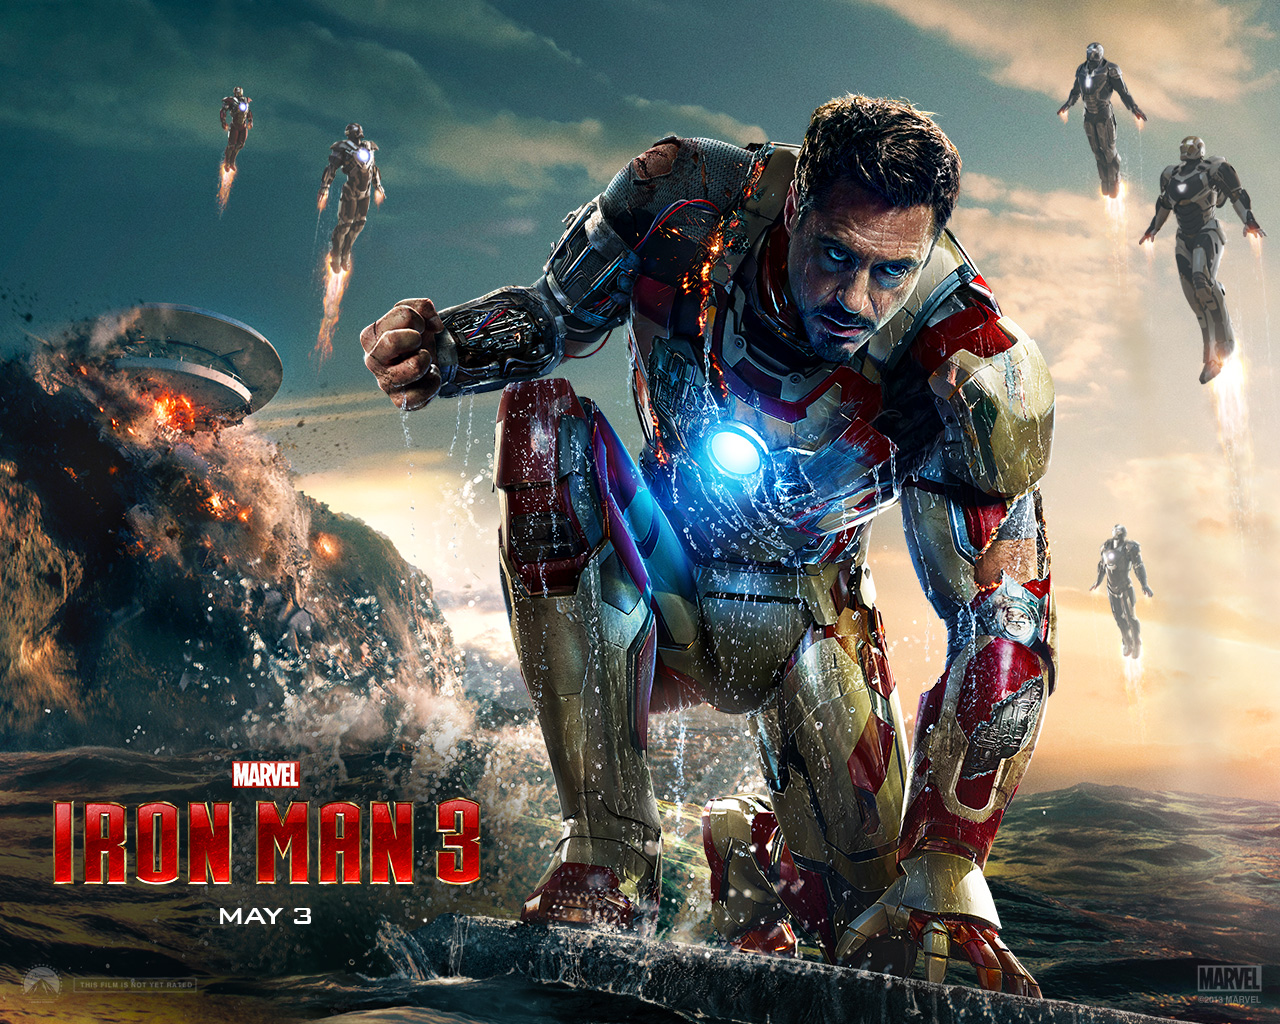 Iron Man HD Wallpapers For Pc Android Mobile & iPhone Iron Man 4k Images